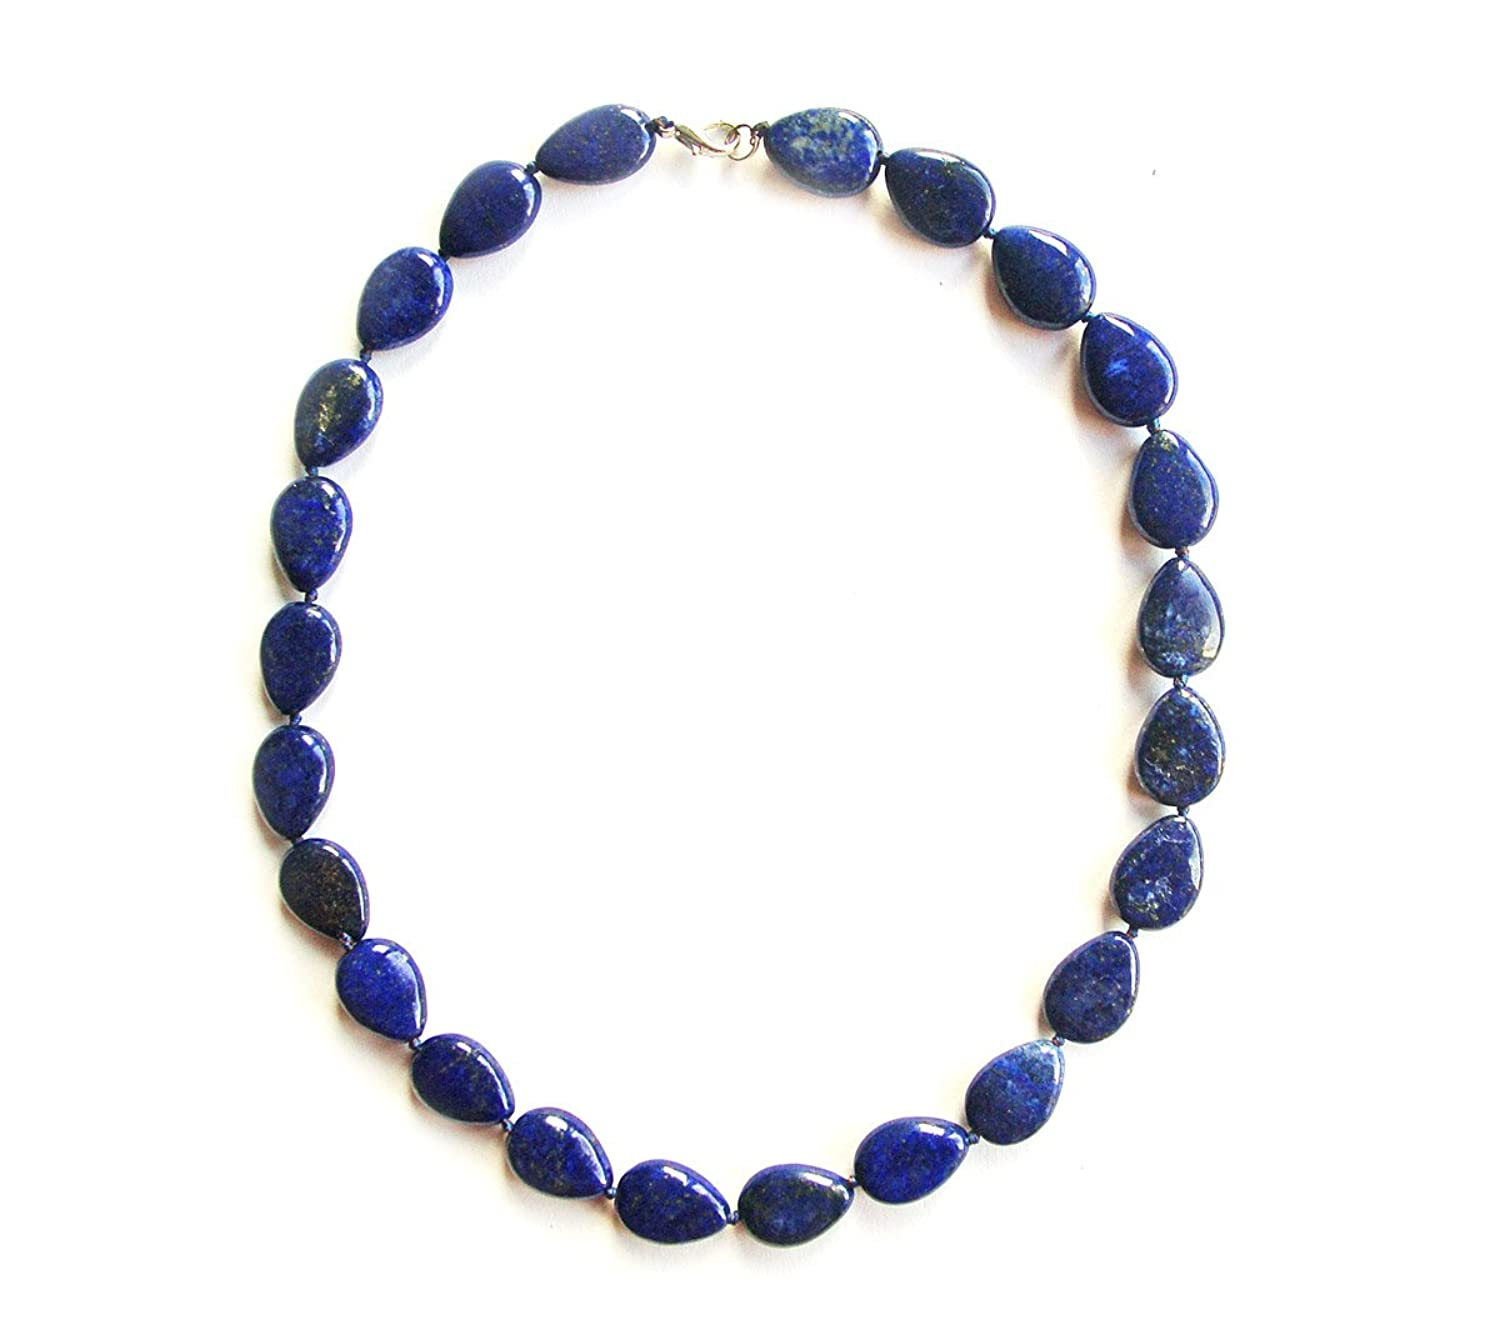 TRENDOMLY Necklace in Lapis Lazuli Blue High-quality and stylish qXZaHrP